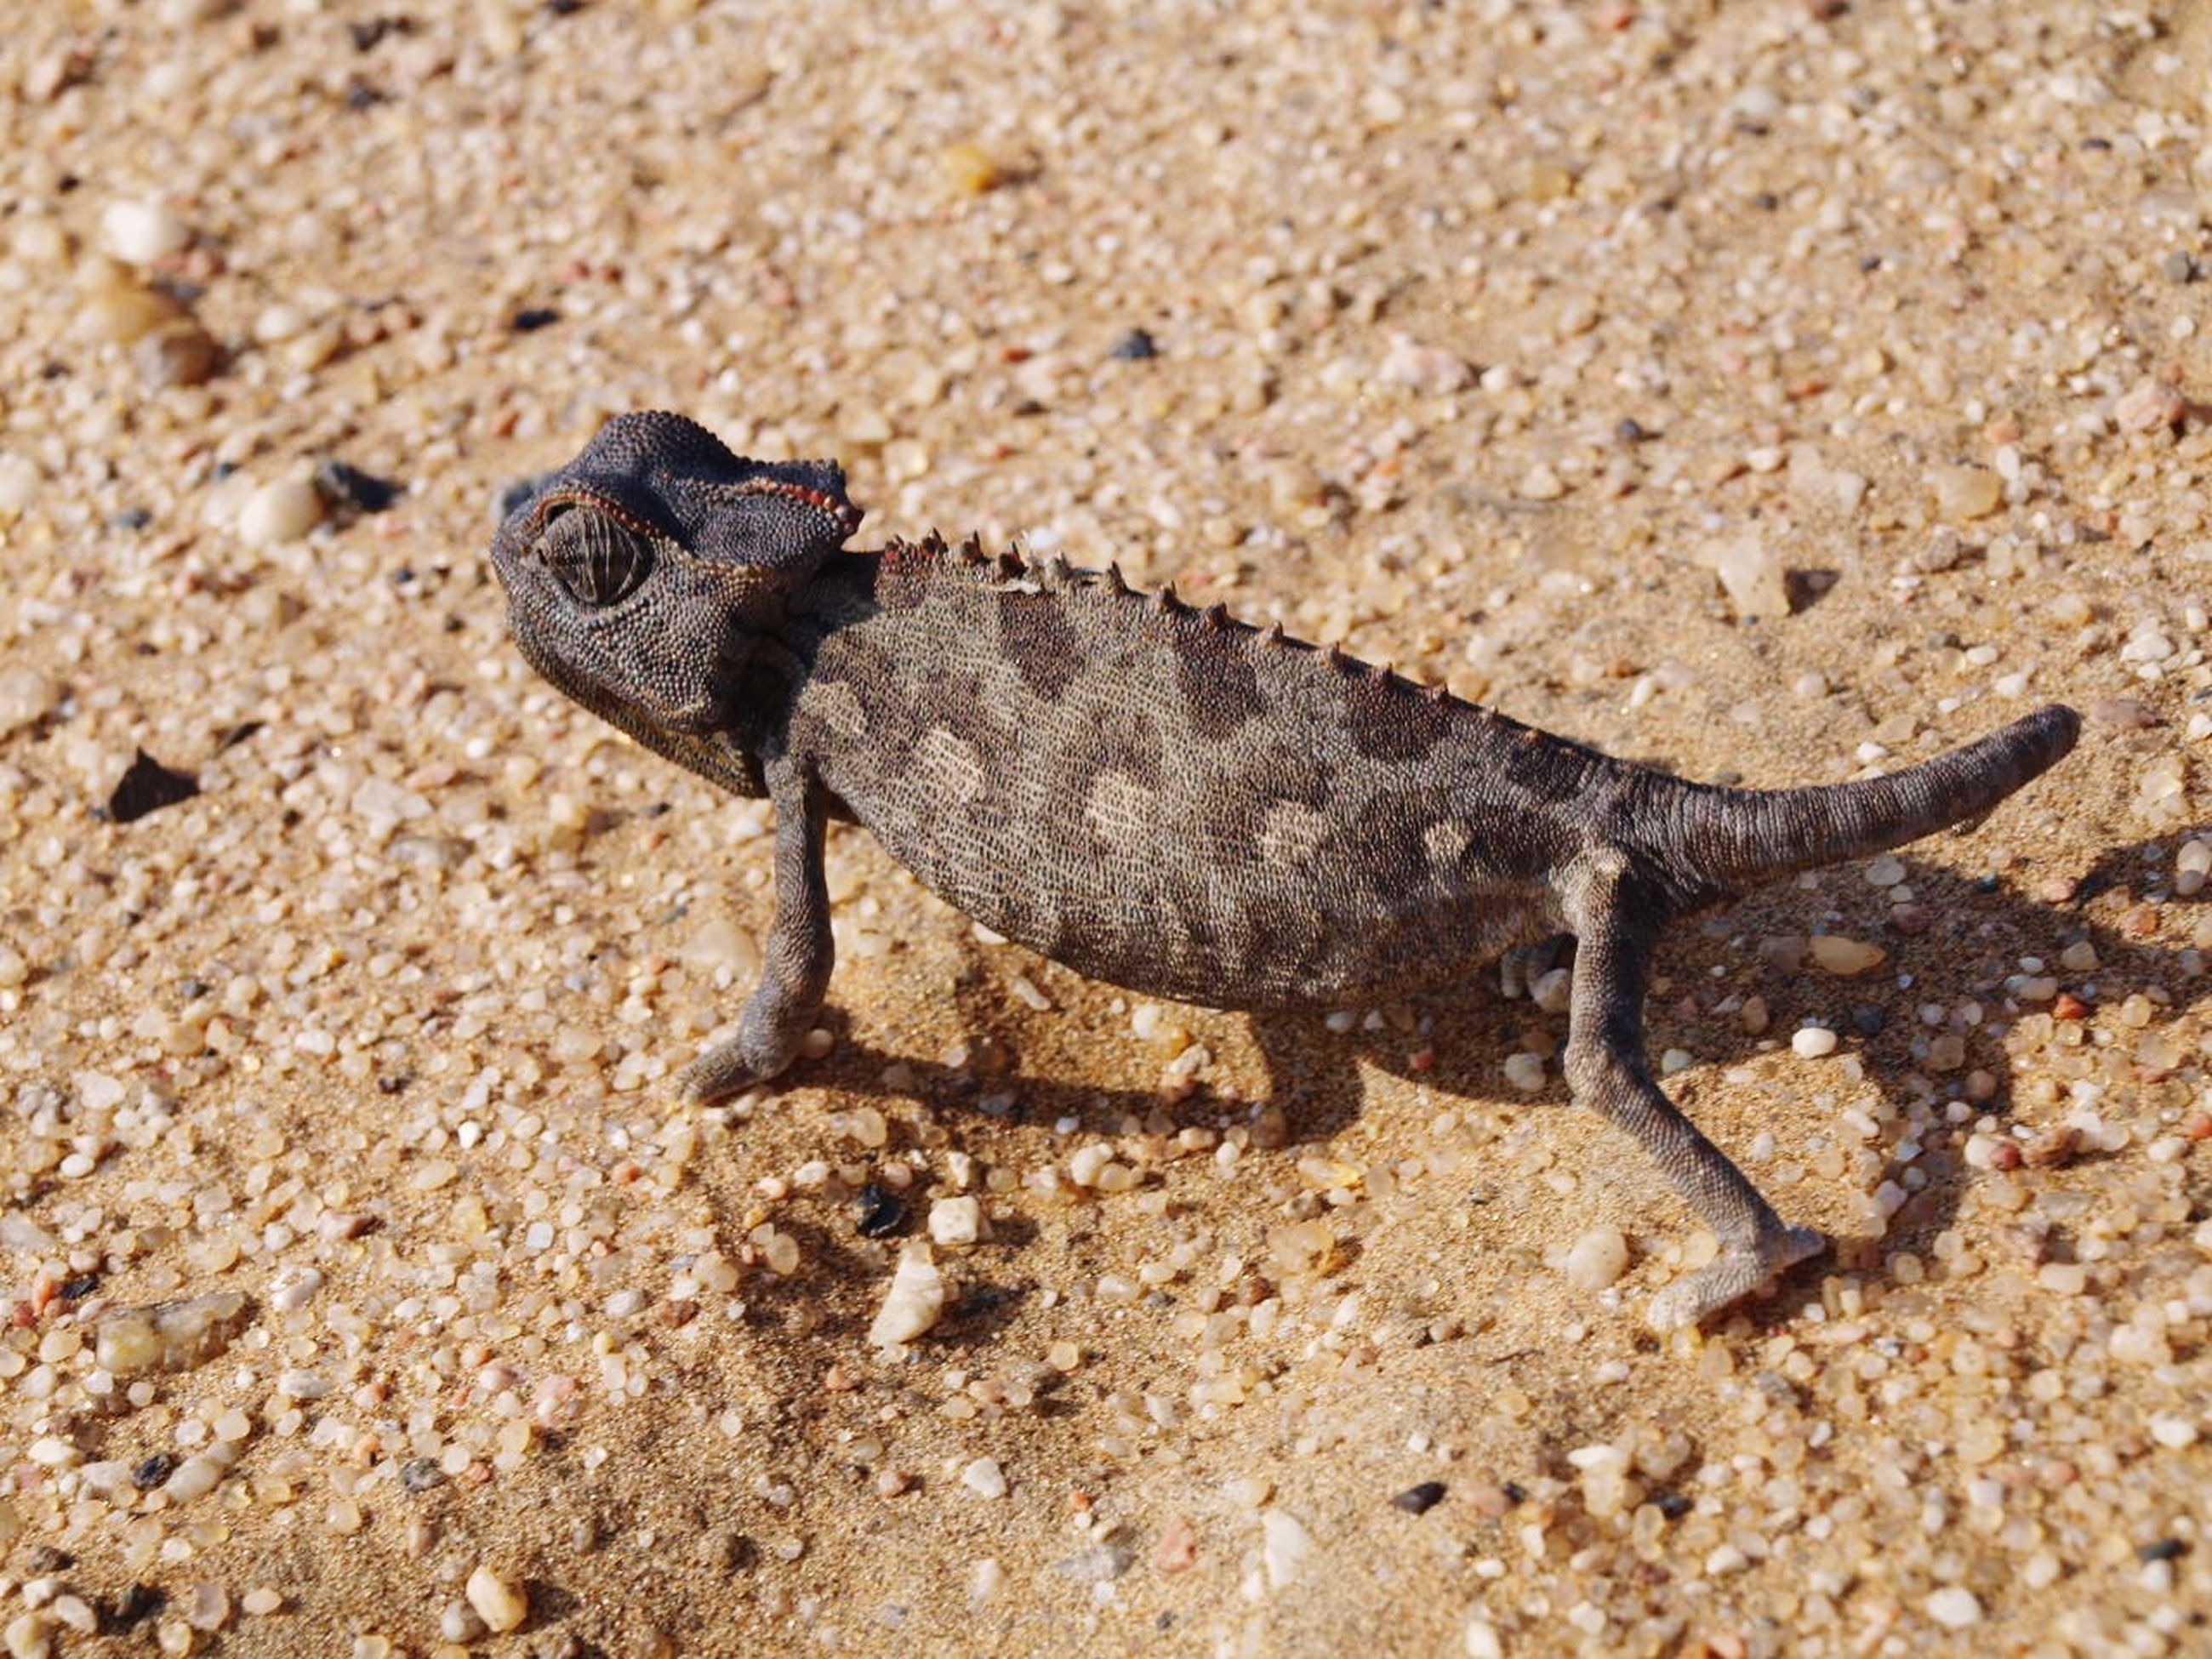 animal themes, one animal, animals in the wild, wildlife, sand, beach, high angle view, reptile, full length, nature, lizard, day, outdoors, rock - object, zoology, close-up, sunlight, ground, no people, insect